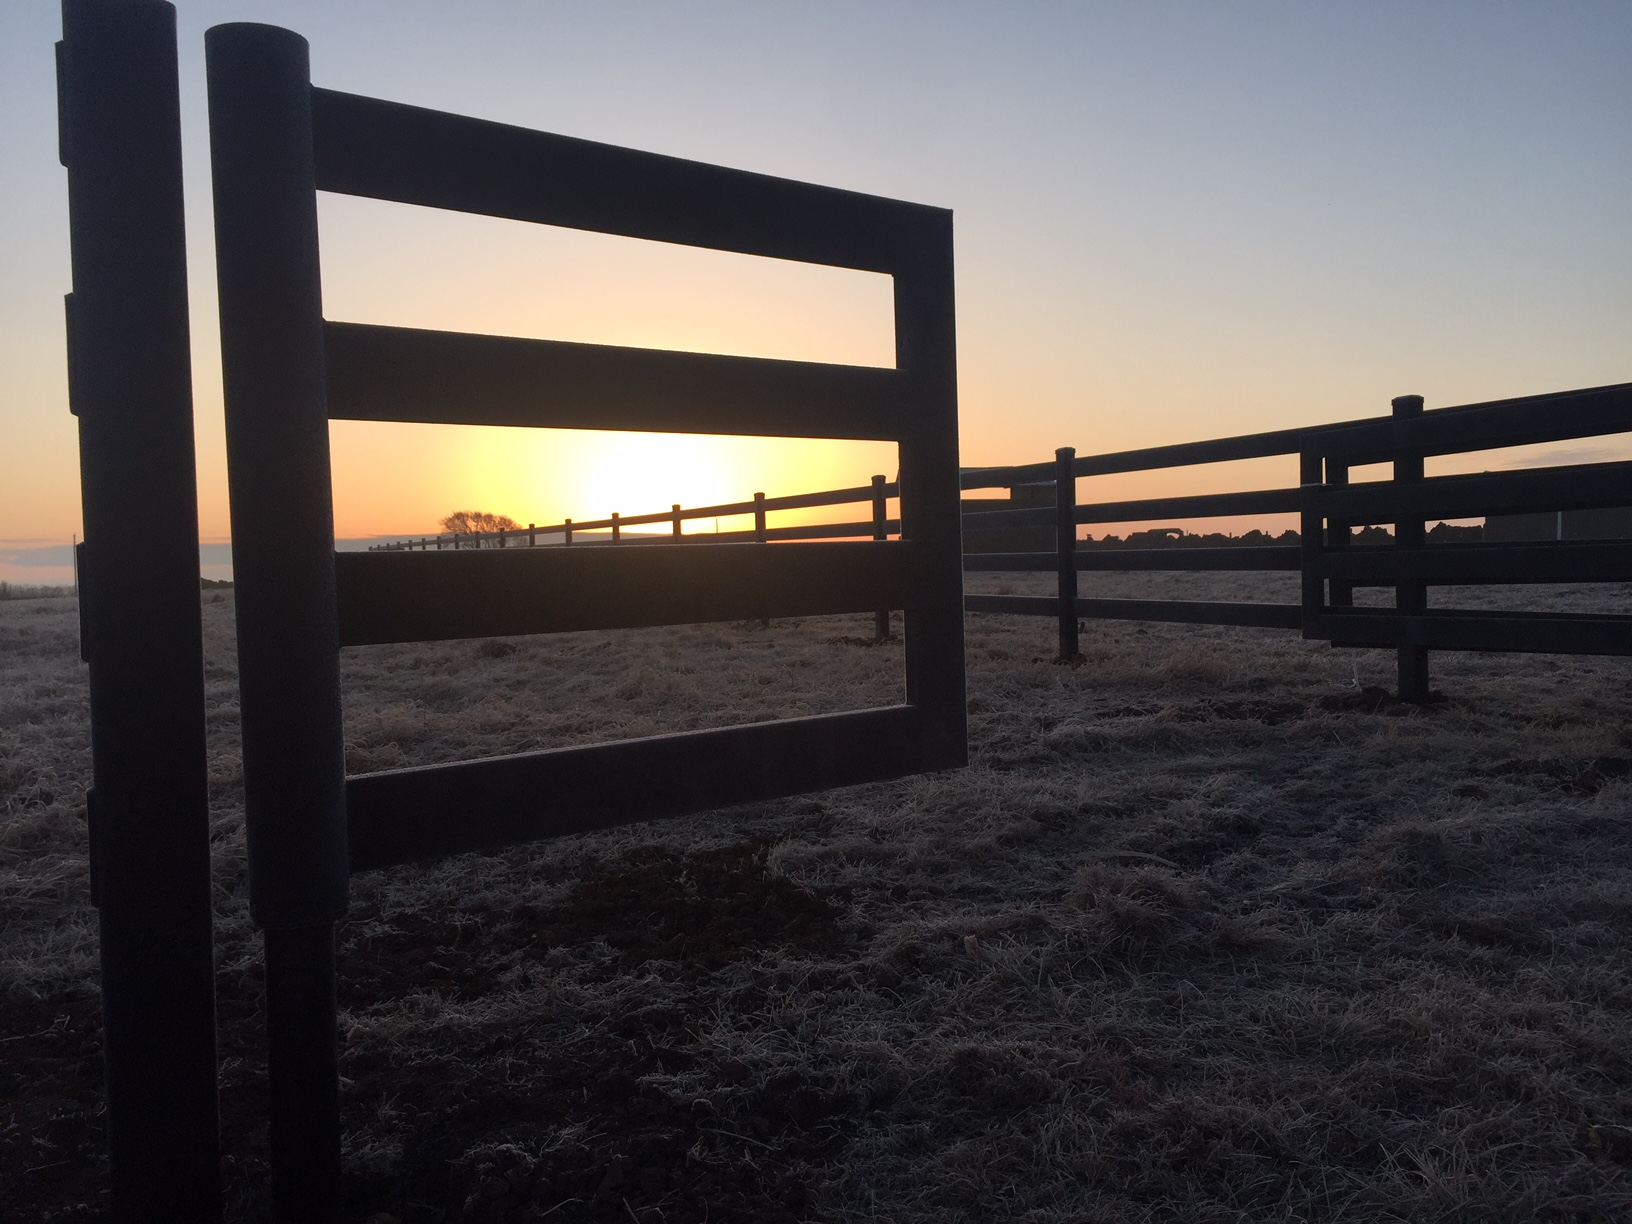 Sun and Fence Rise in Kansas!